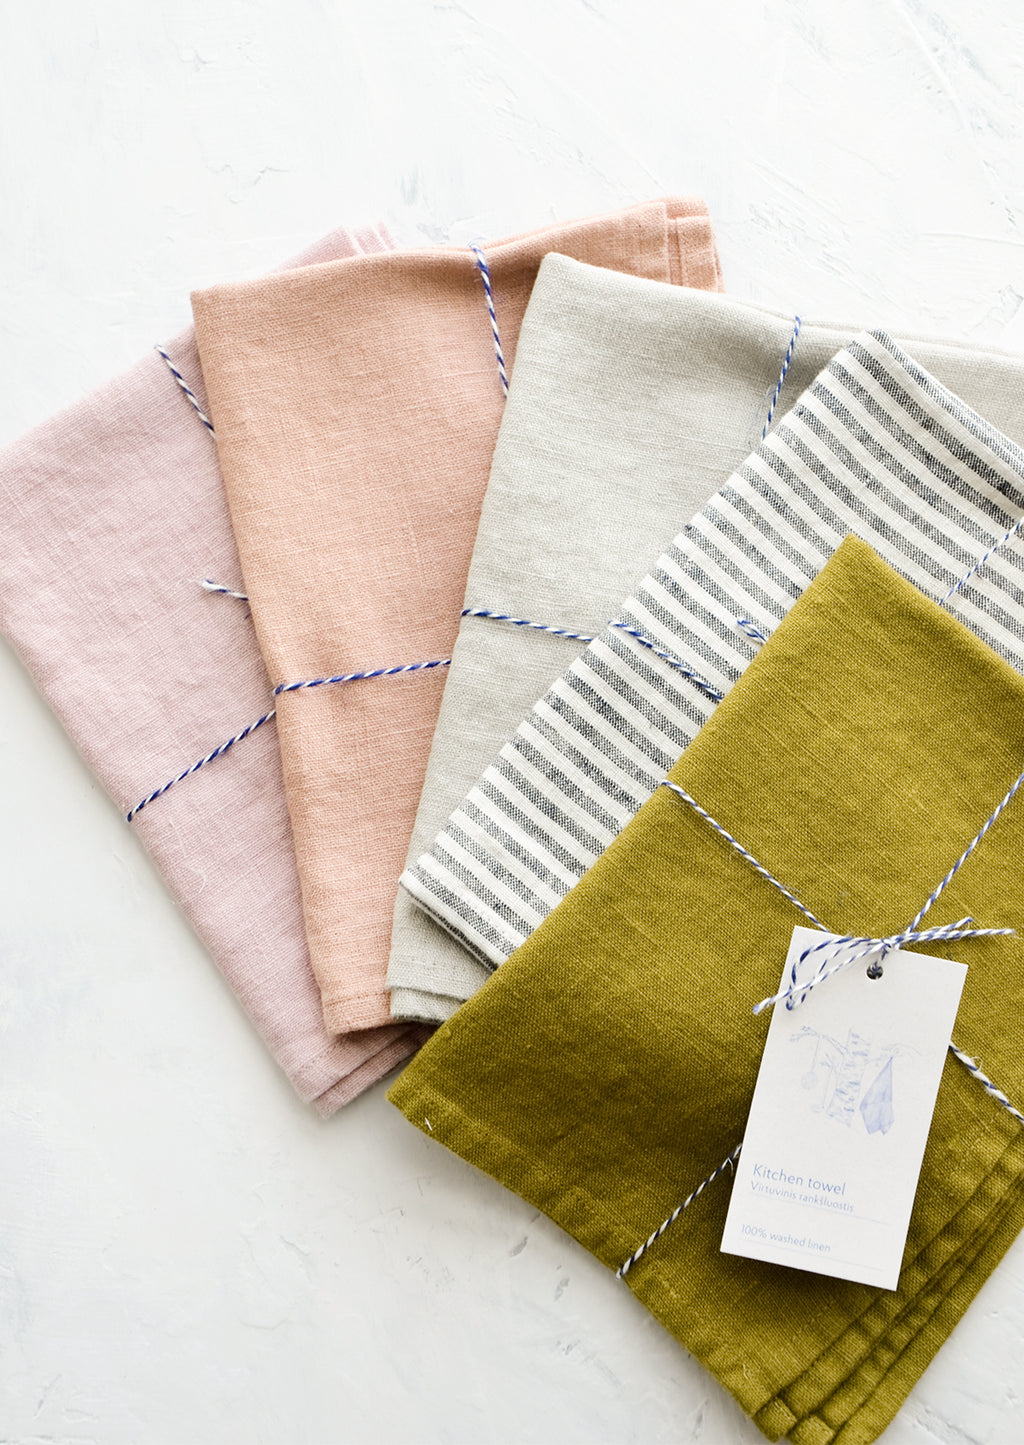 1: An array of colorful linen tea towels